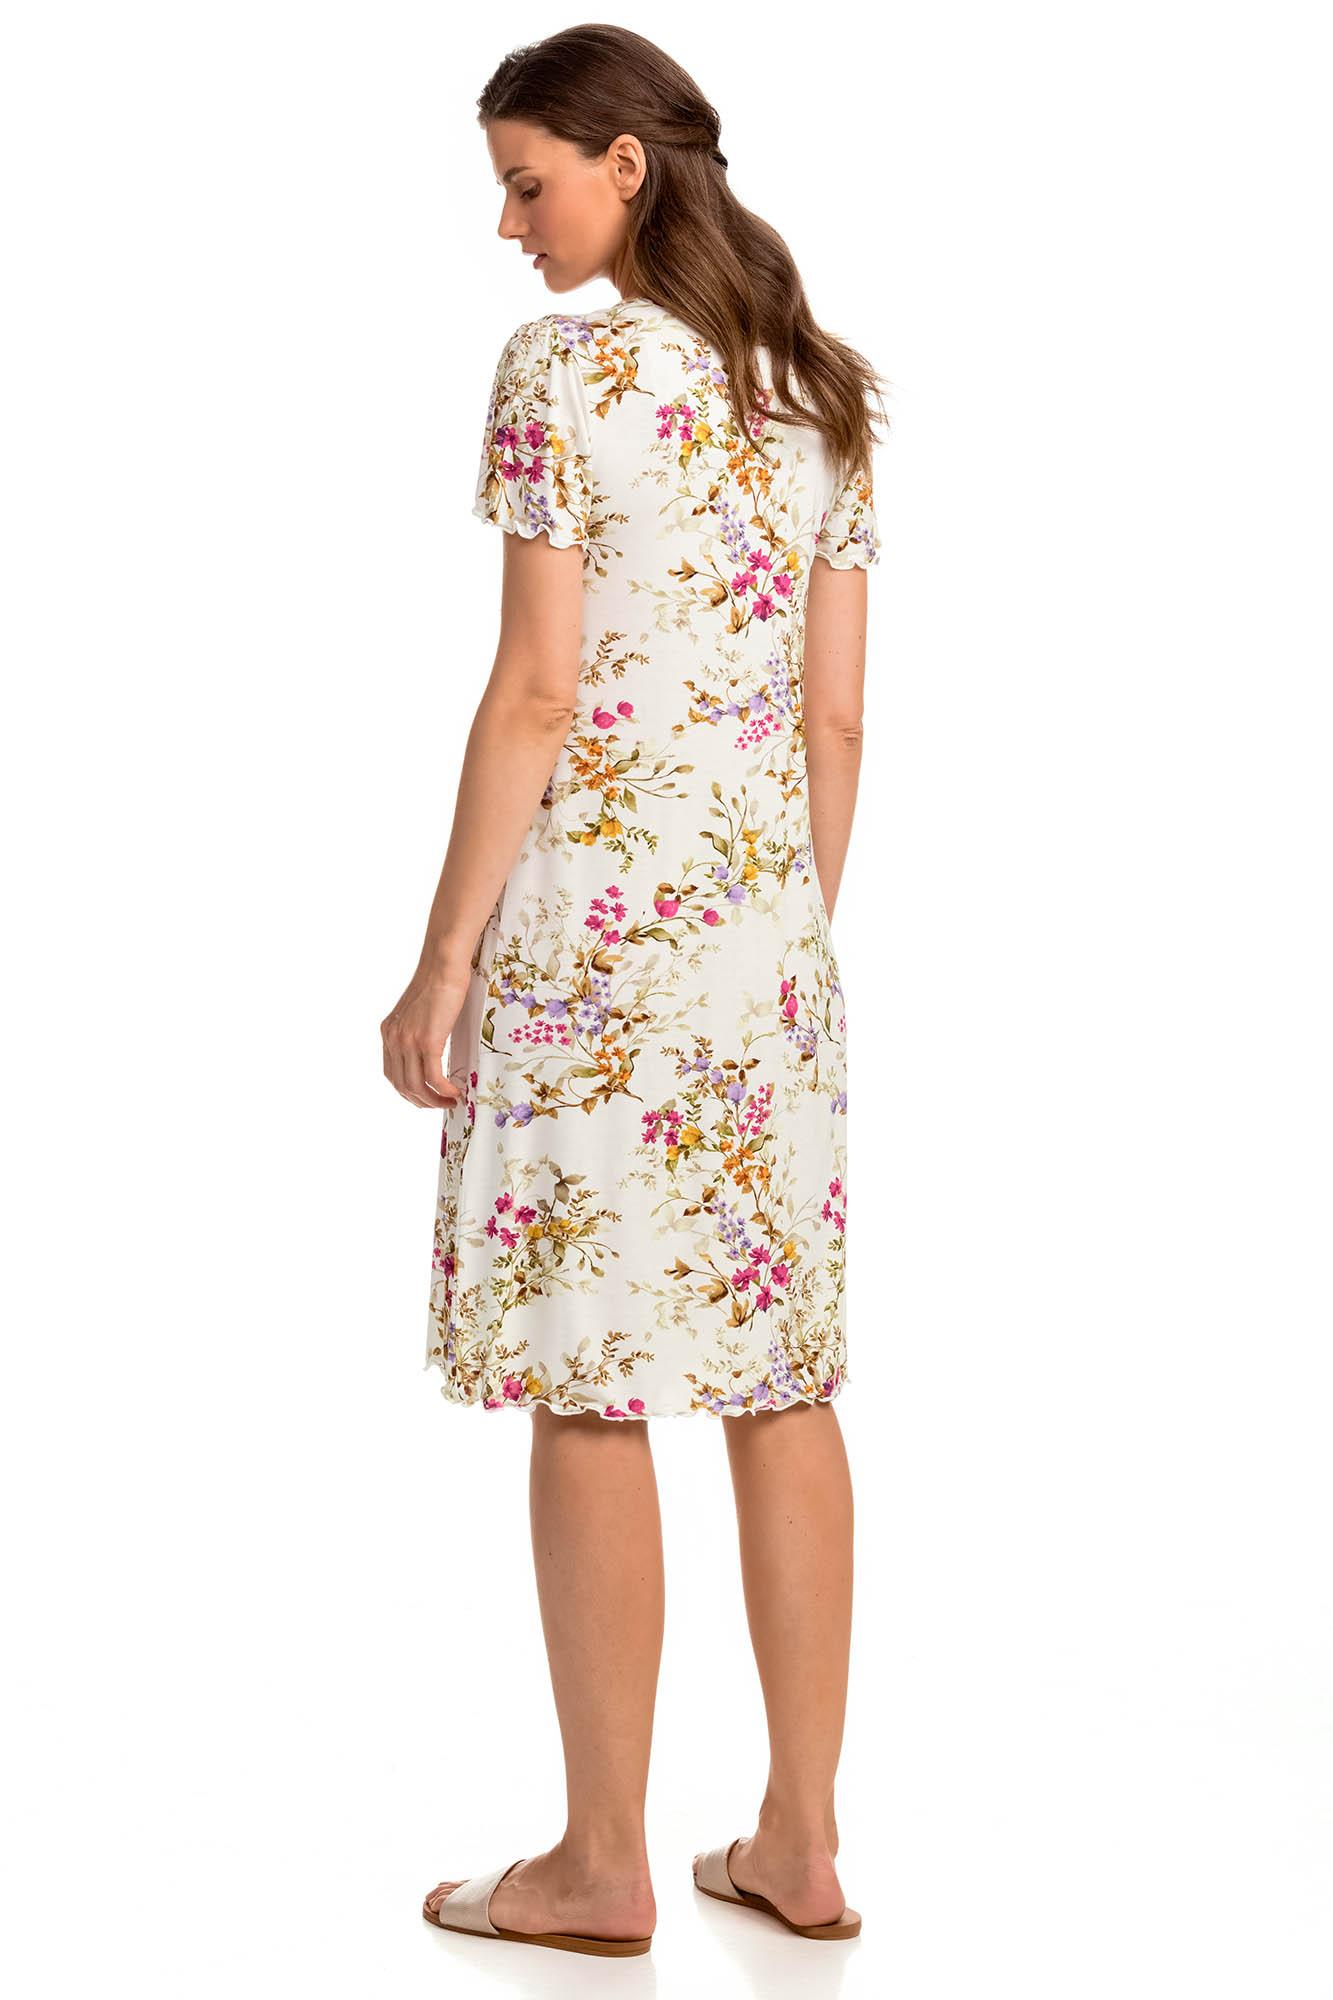 Women's Floral Nightgown with Buttons